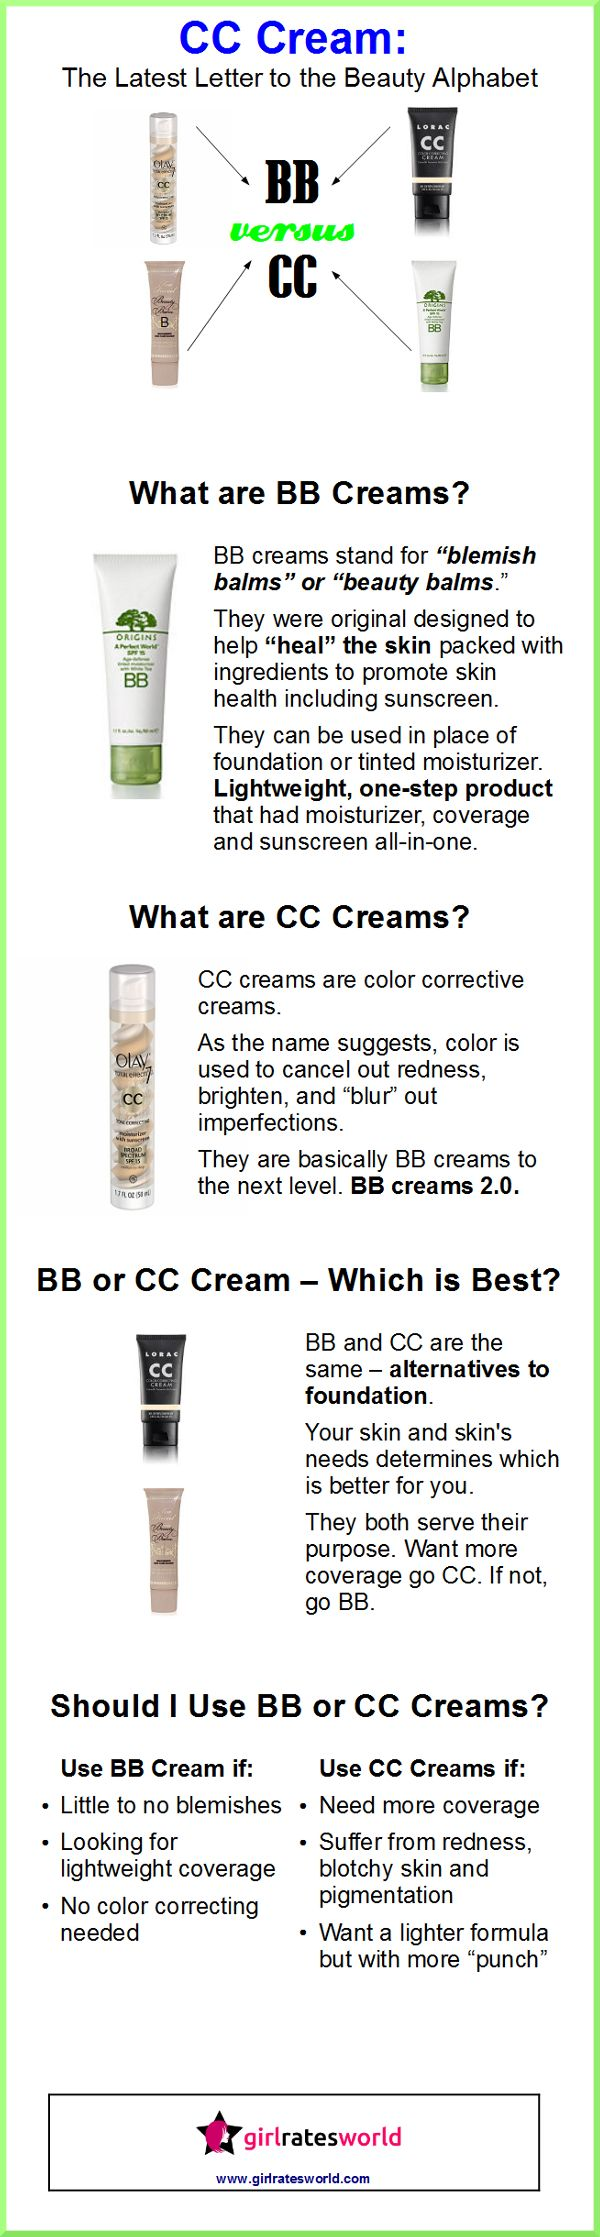 CC Cream vs. BB Cream - Which is Better? [Infographic]